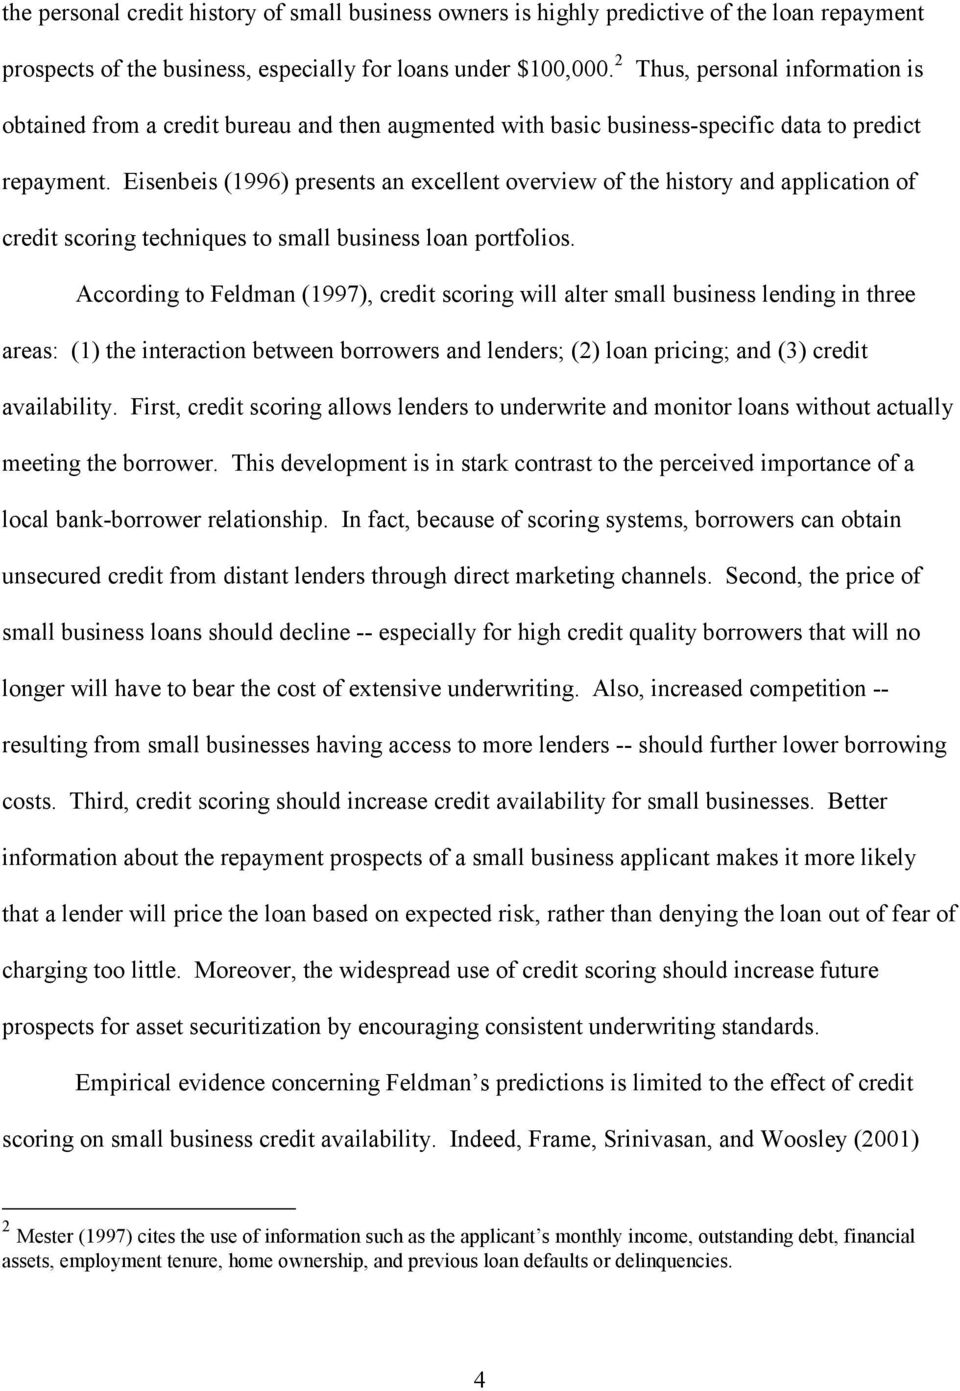 Eisenbeis (1996) presents an excellent overview of the history and application of credit scoring techniques to small business loan portfolios.